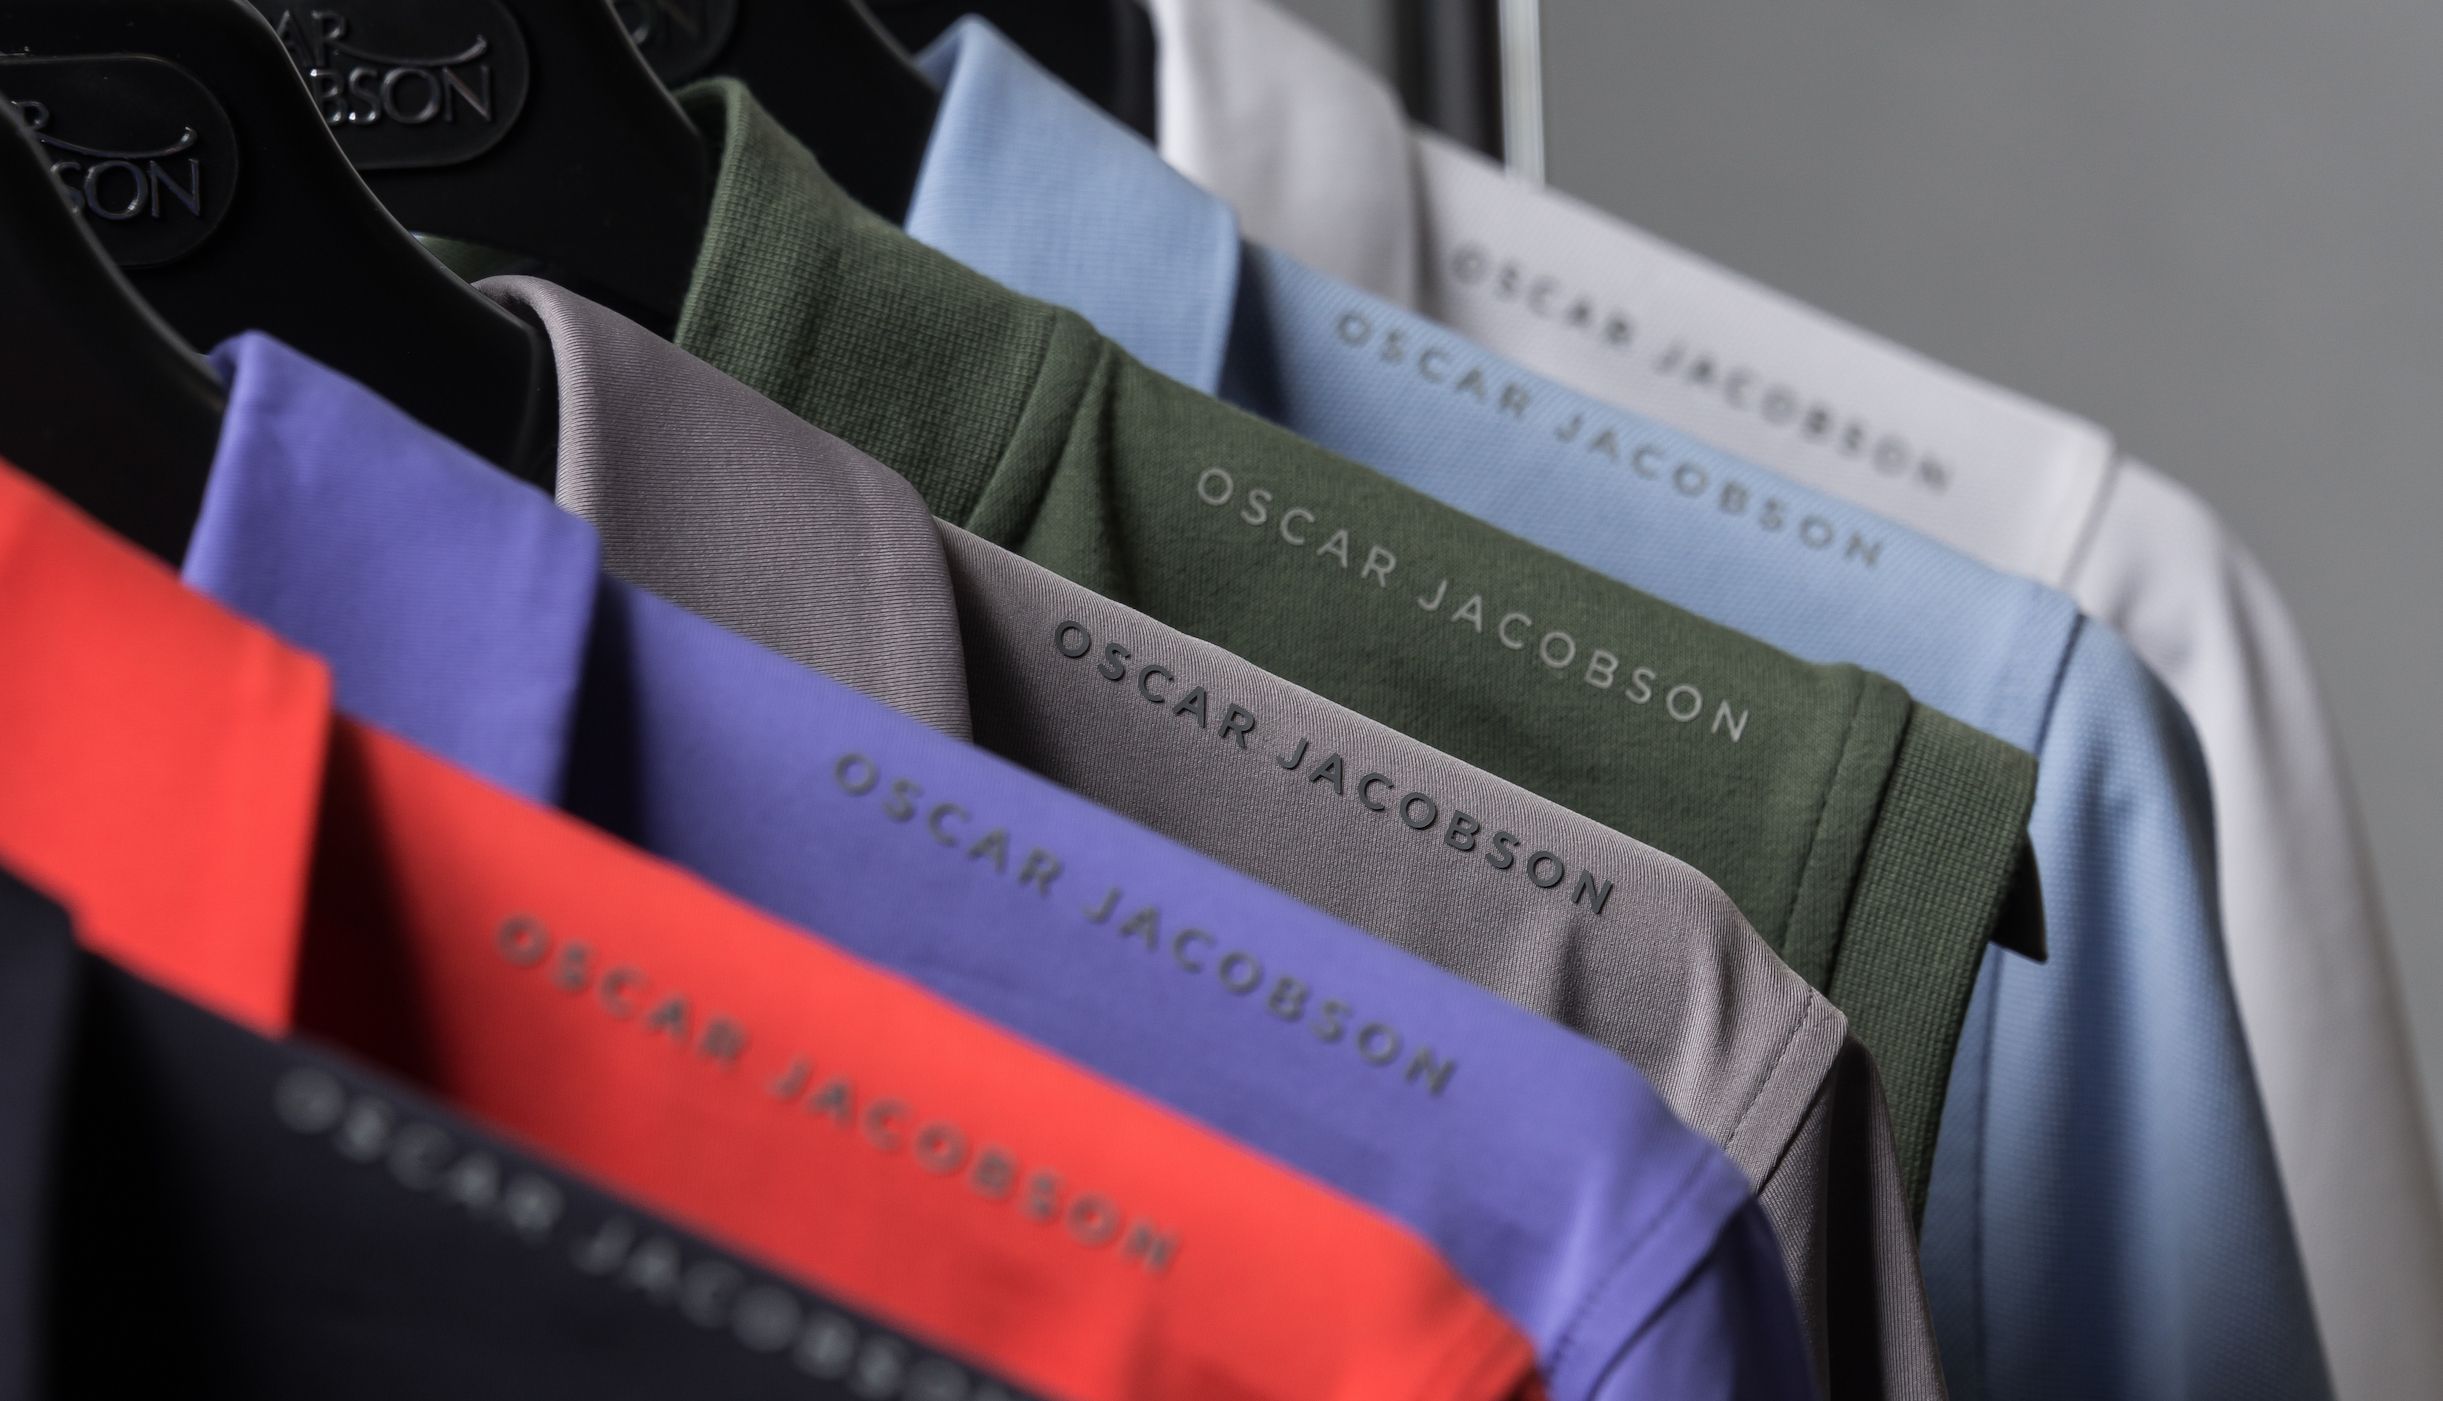 Oscar Jacobson launch 2018 SS collection